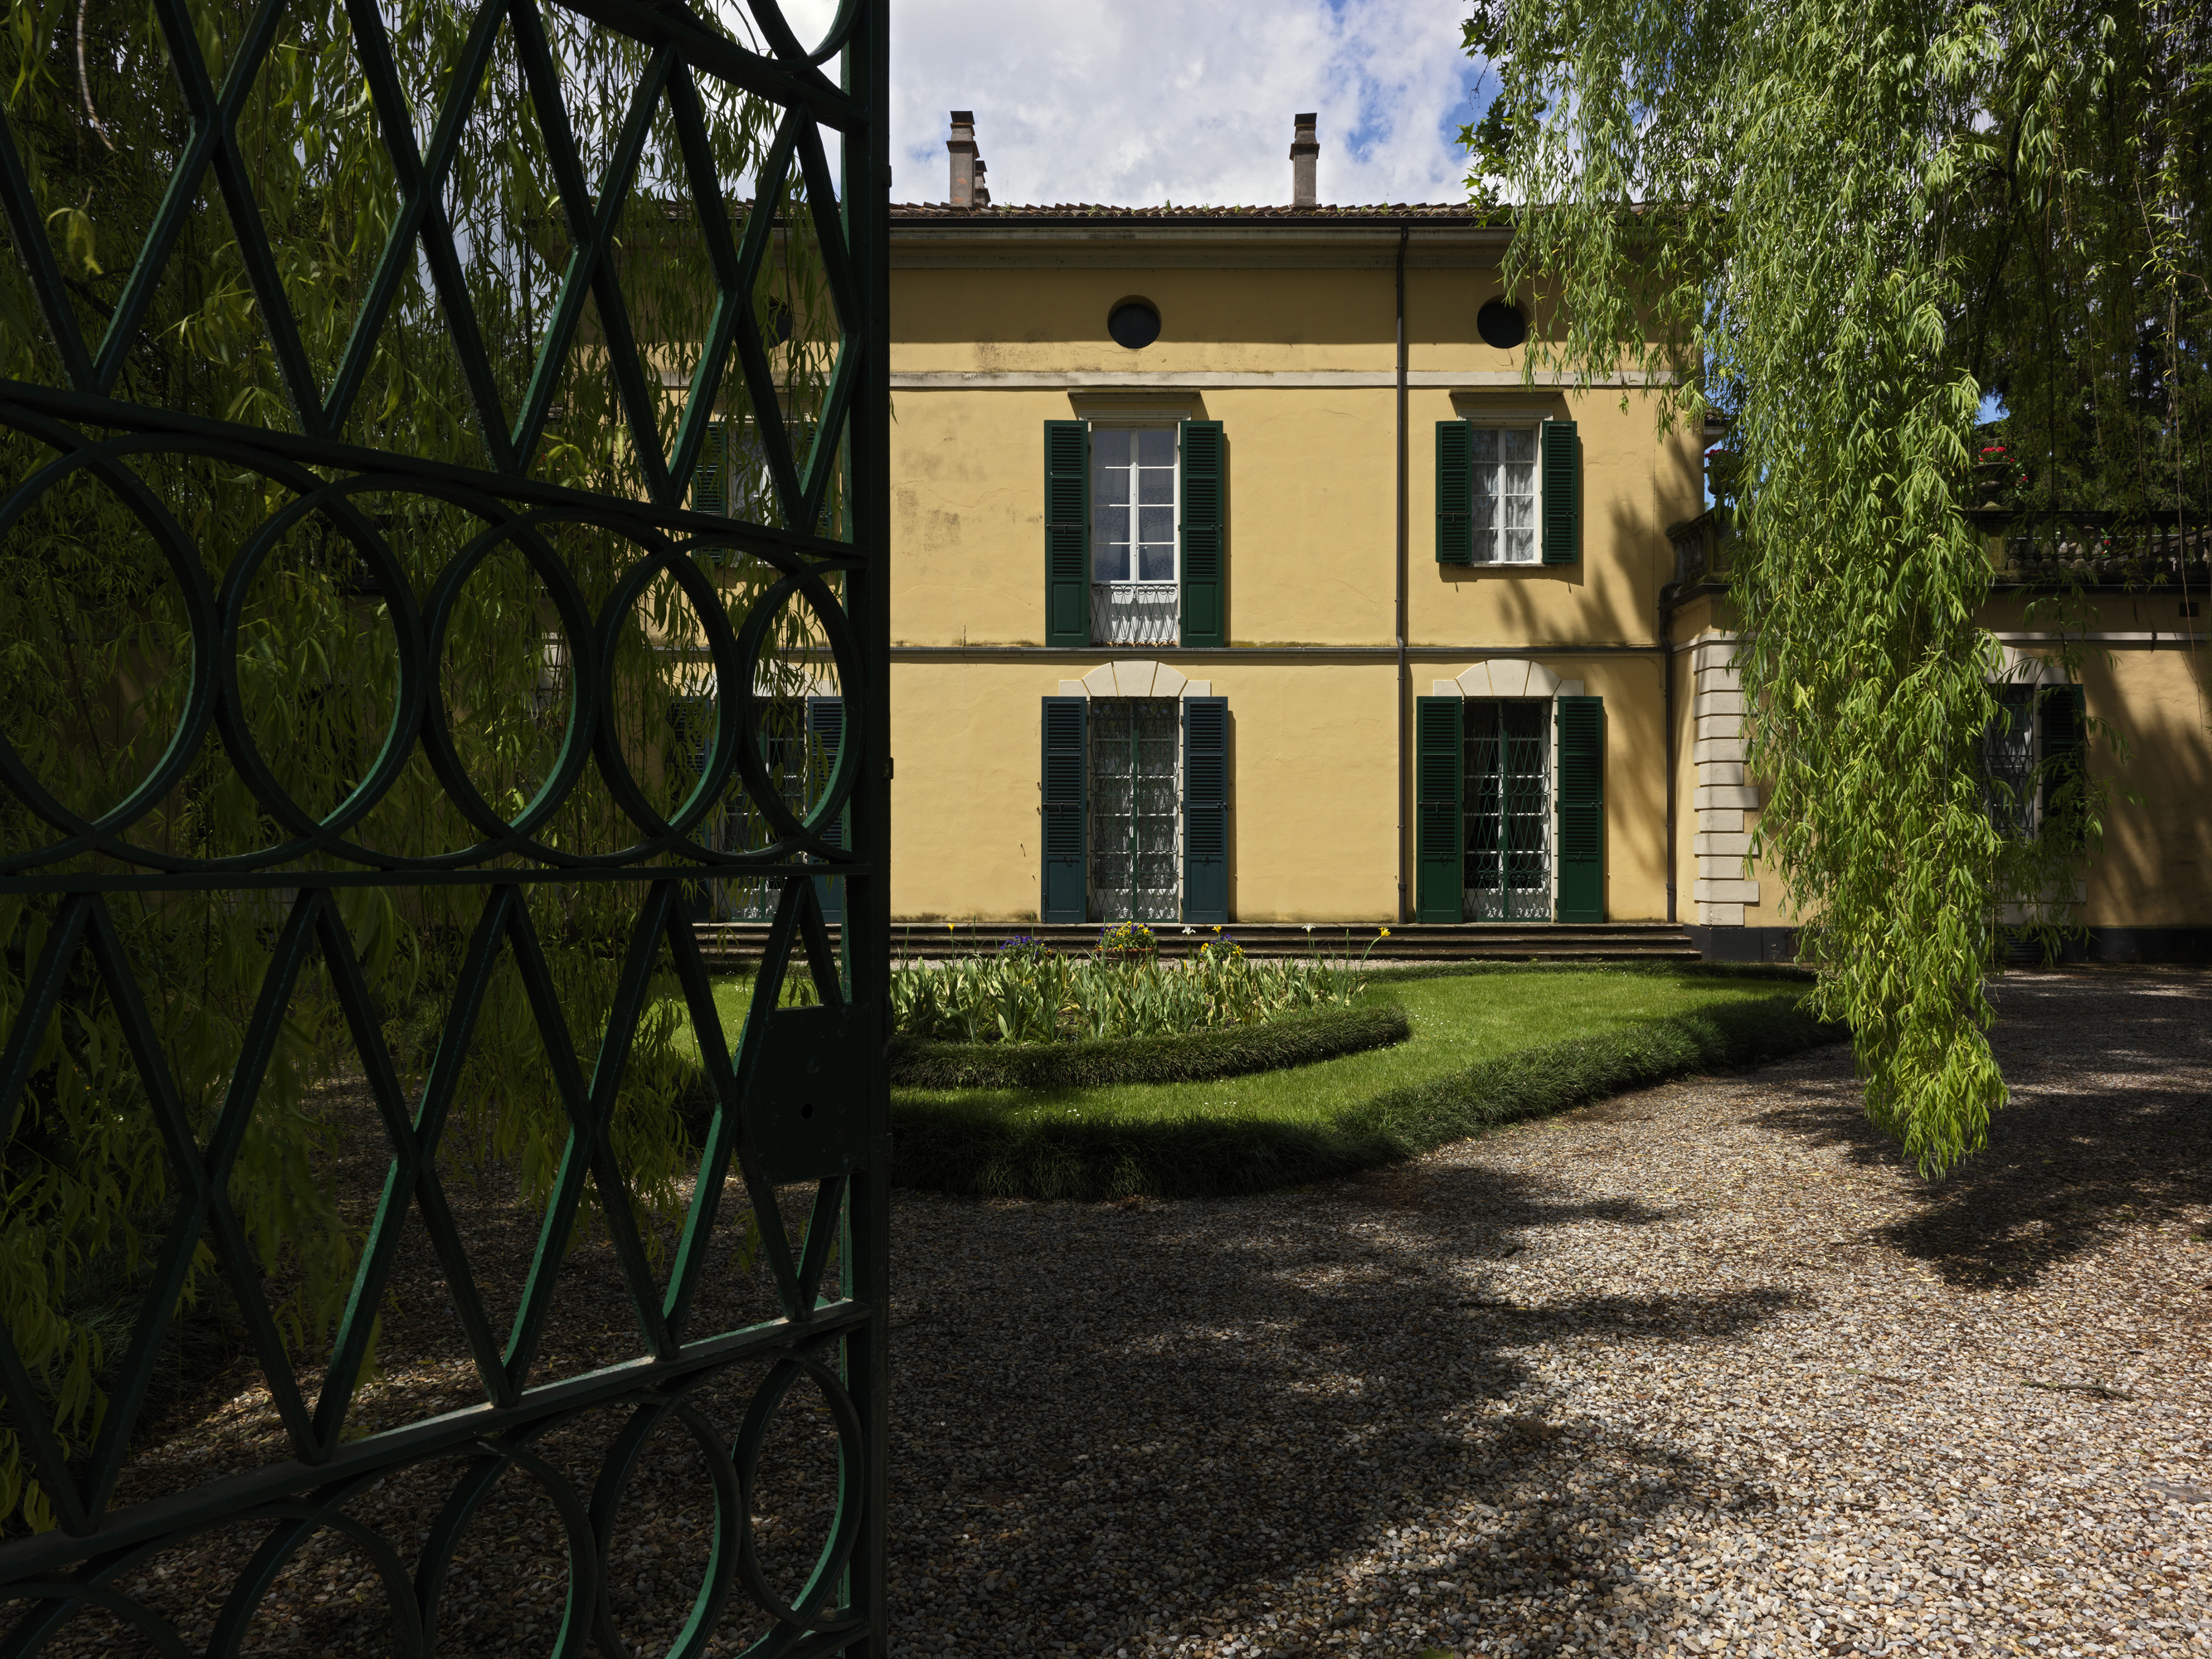 Entrance of Villa Verdi